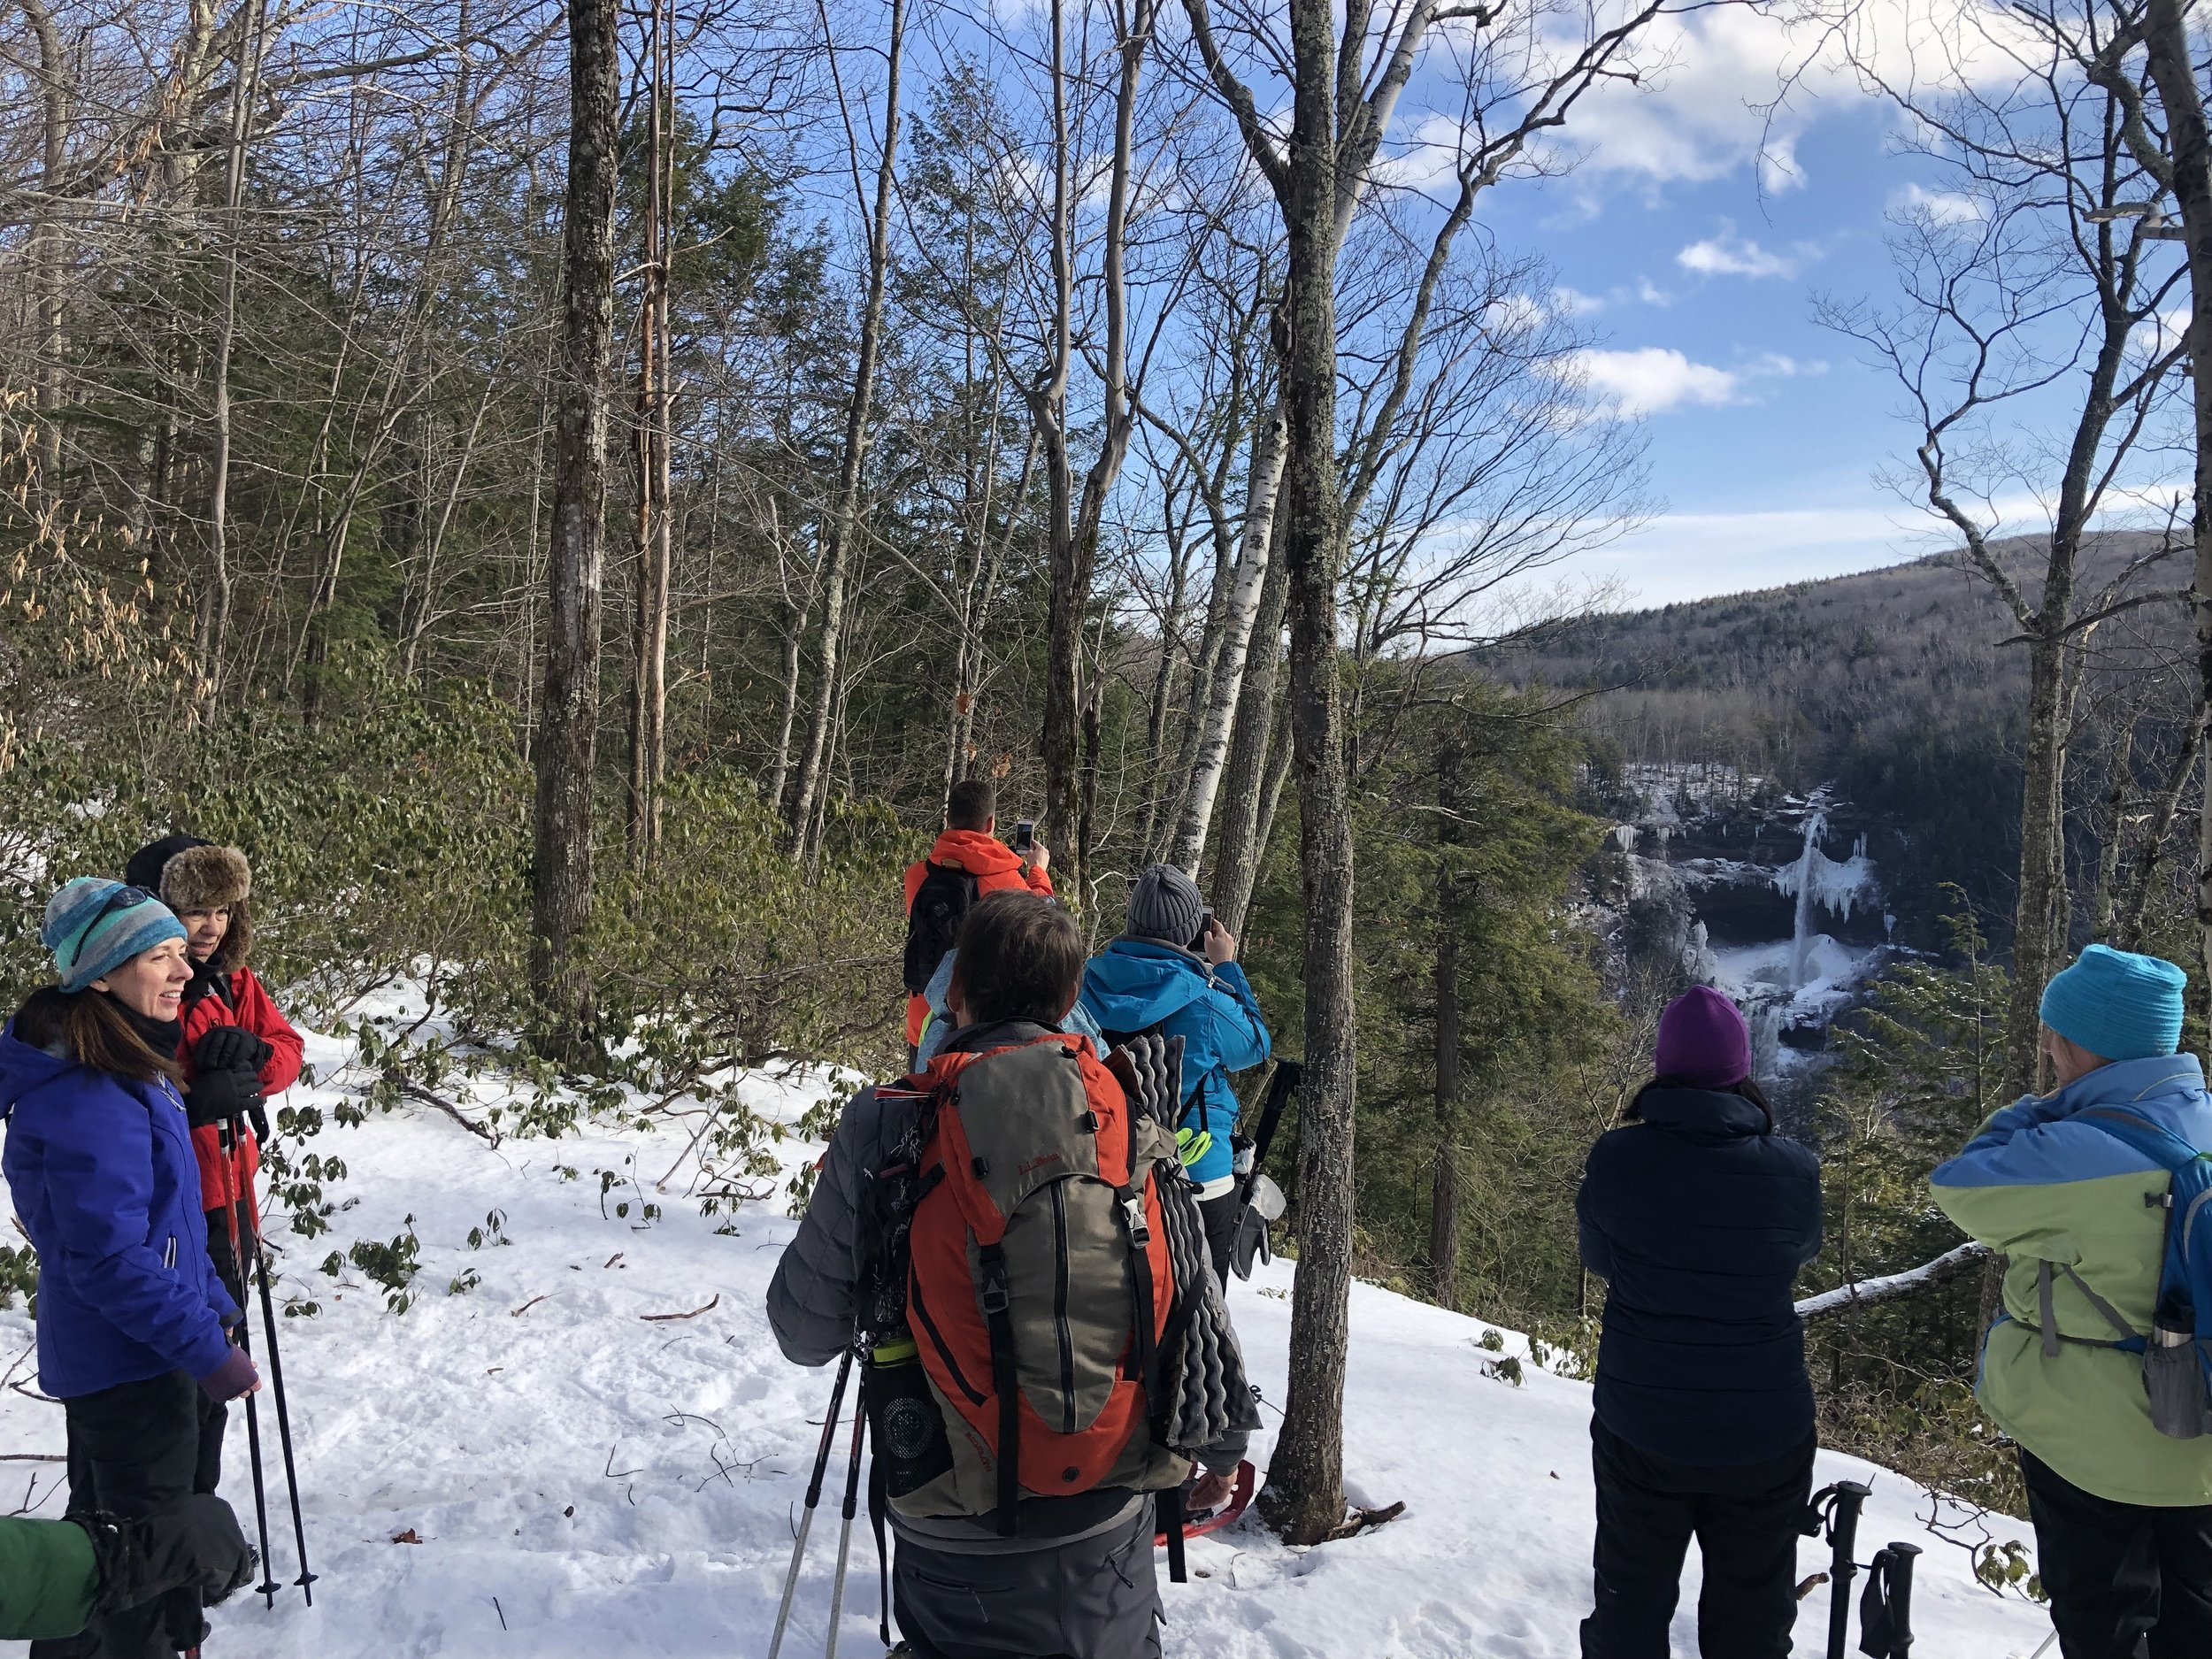 Snowshoeing along the Kaaterskill Rail Trail